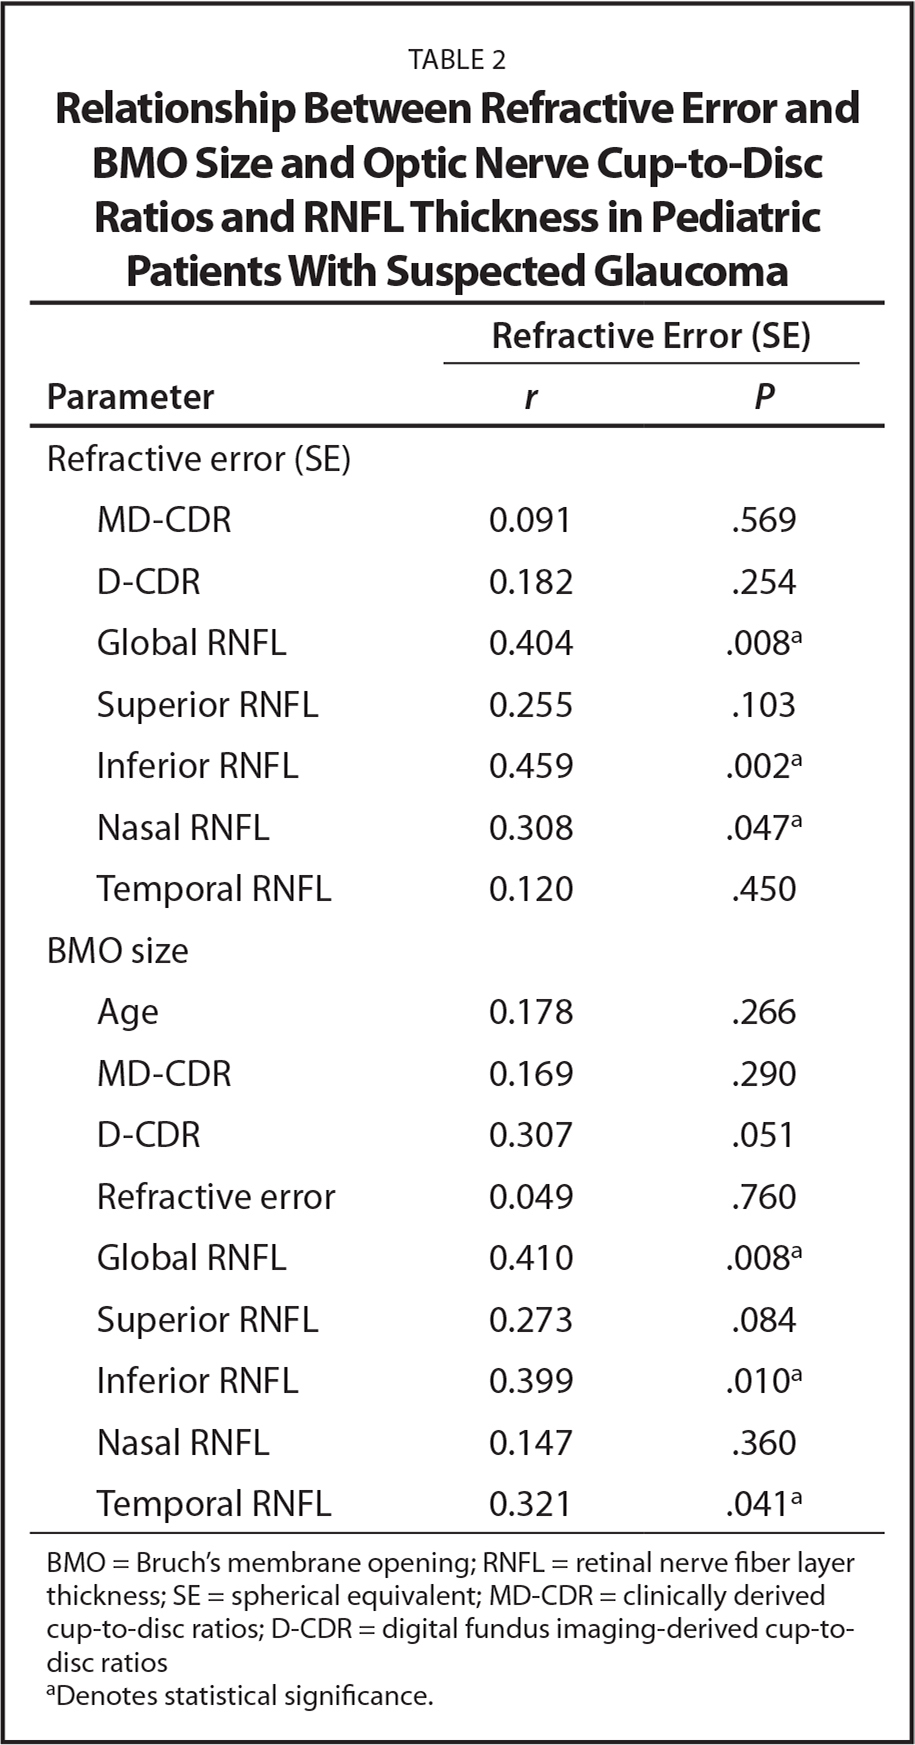 Relationship Between Refractive Error and BMO Size and Optic Nerve Cup-to-Disc Ratios and RNFL Thickness in Pediatric Patients With Suspected Glaucoma